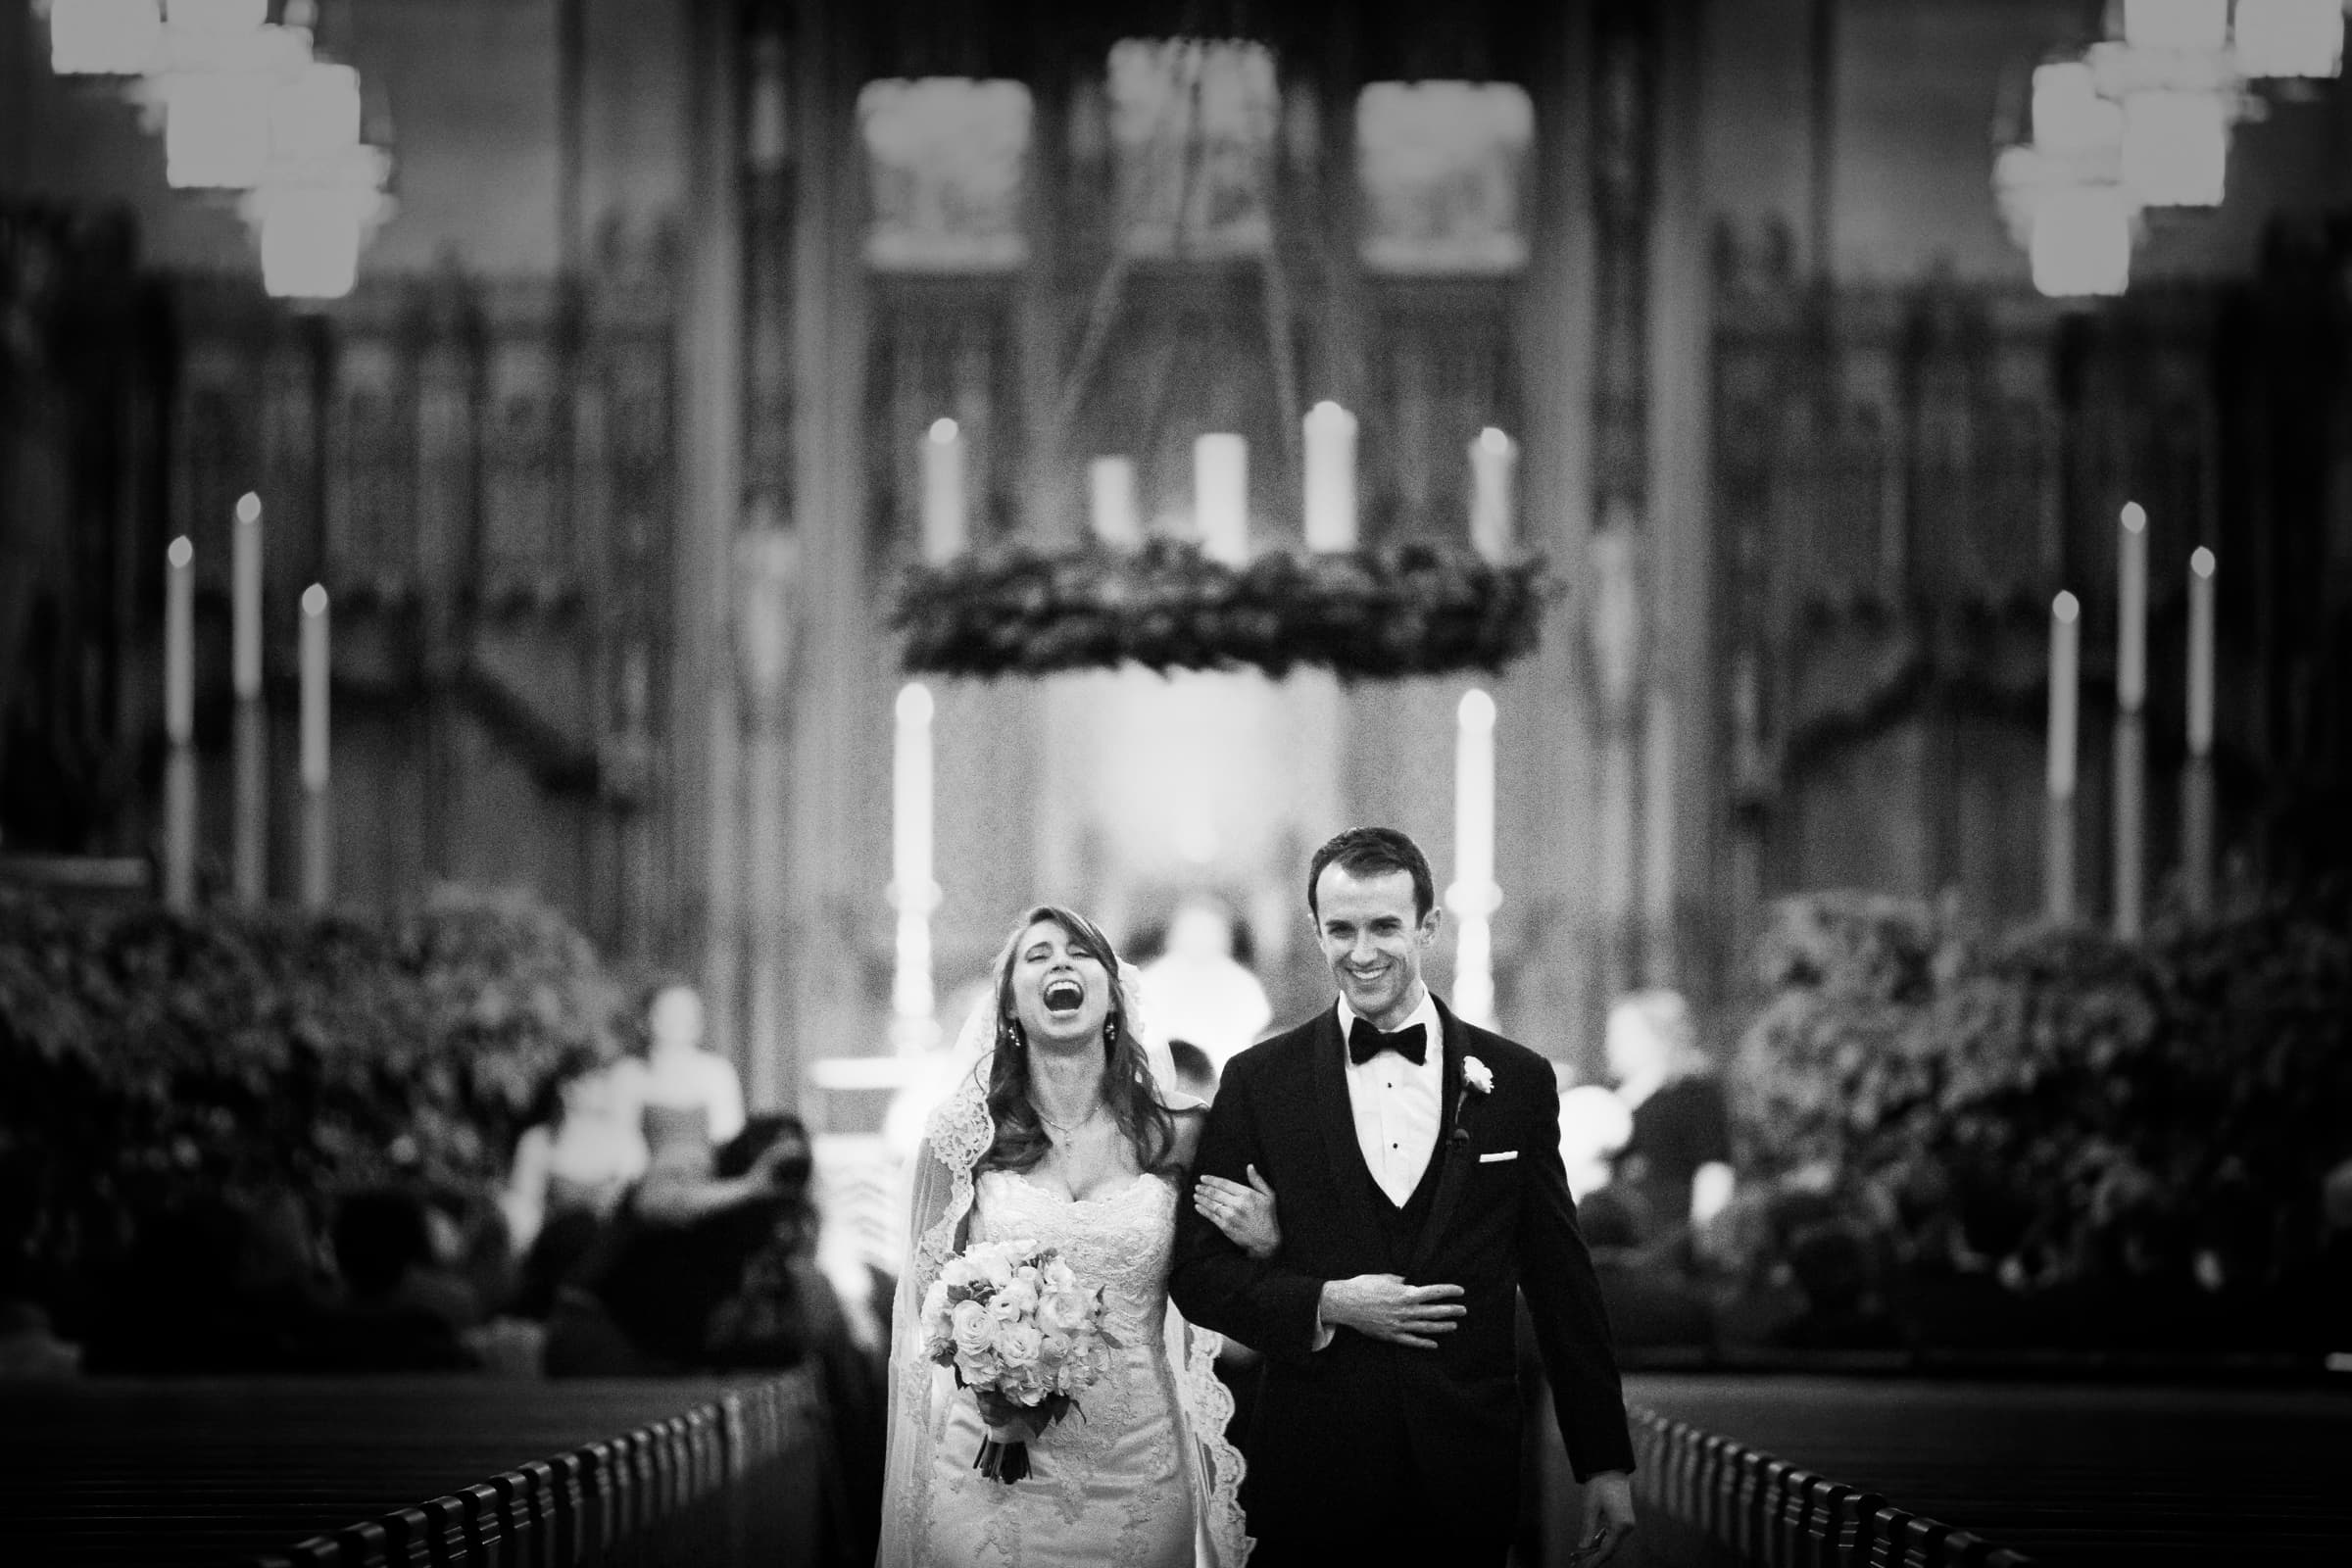 Duke Chapel Wedding Photographer - B&W couple laughing during recessional